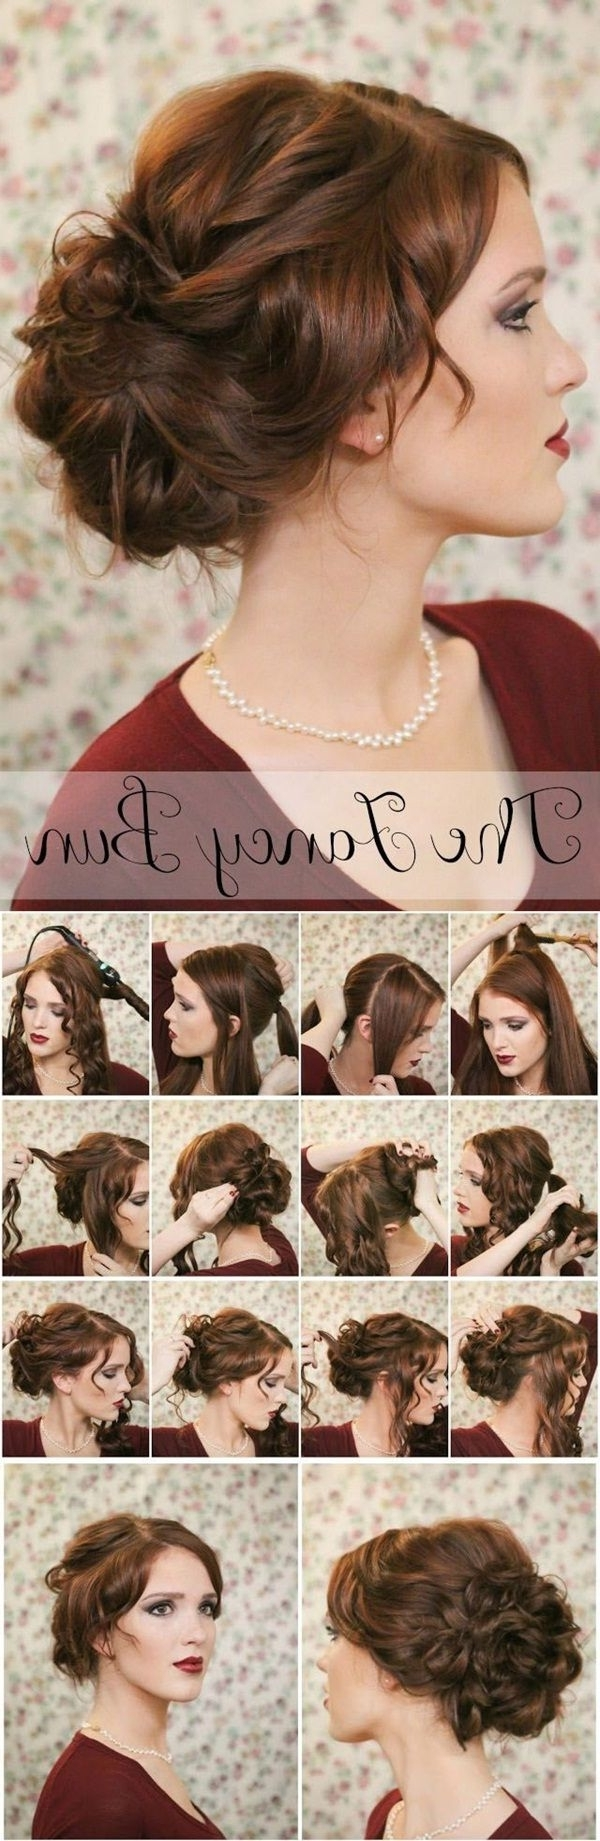 20 Diy Wedding Hairstyles With Tutorials To Try On Your Own With Easy Vintage Updo Hairstyles (View 14 of 15)